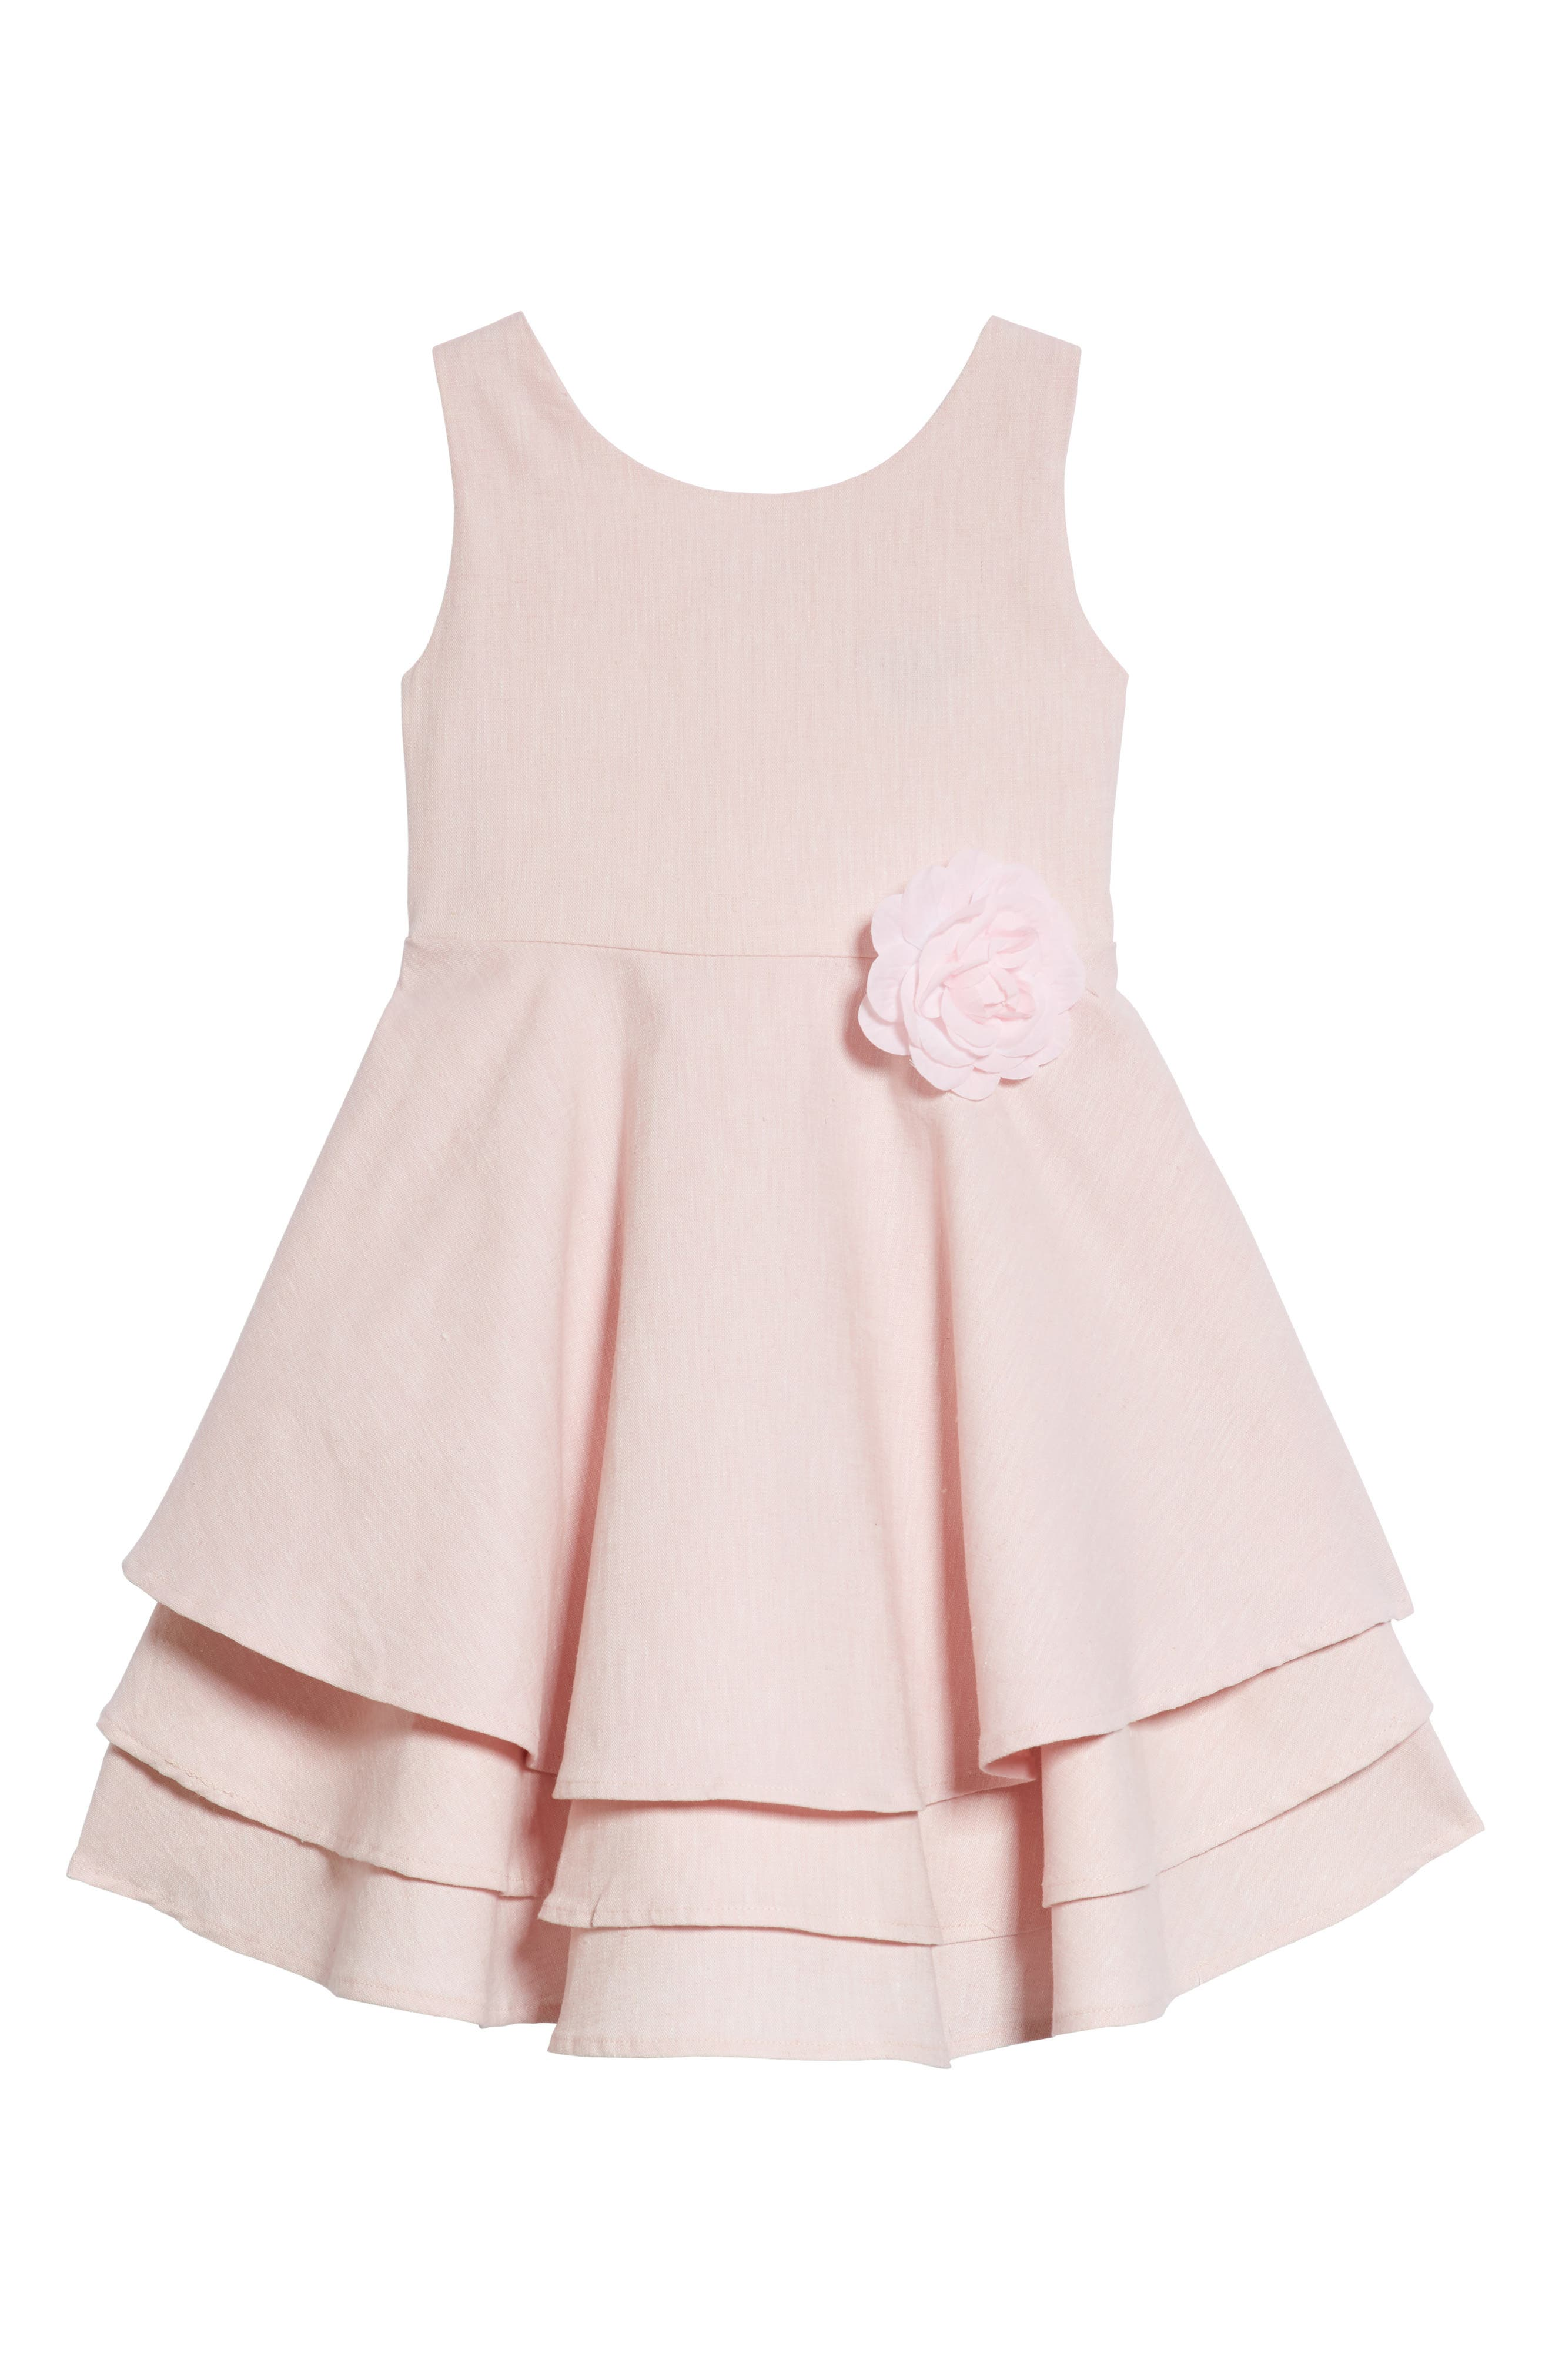 Ava & Yelly Tiered Linen Blend Party Dress (Toddler Girls & Little Girls)